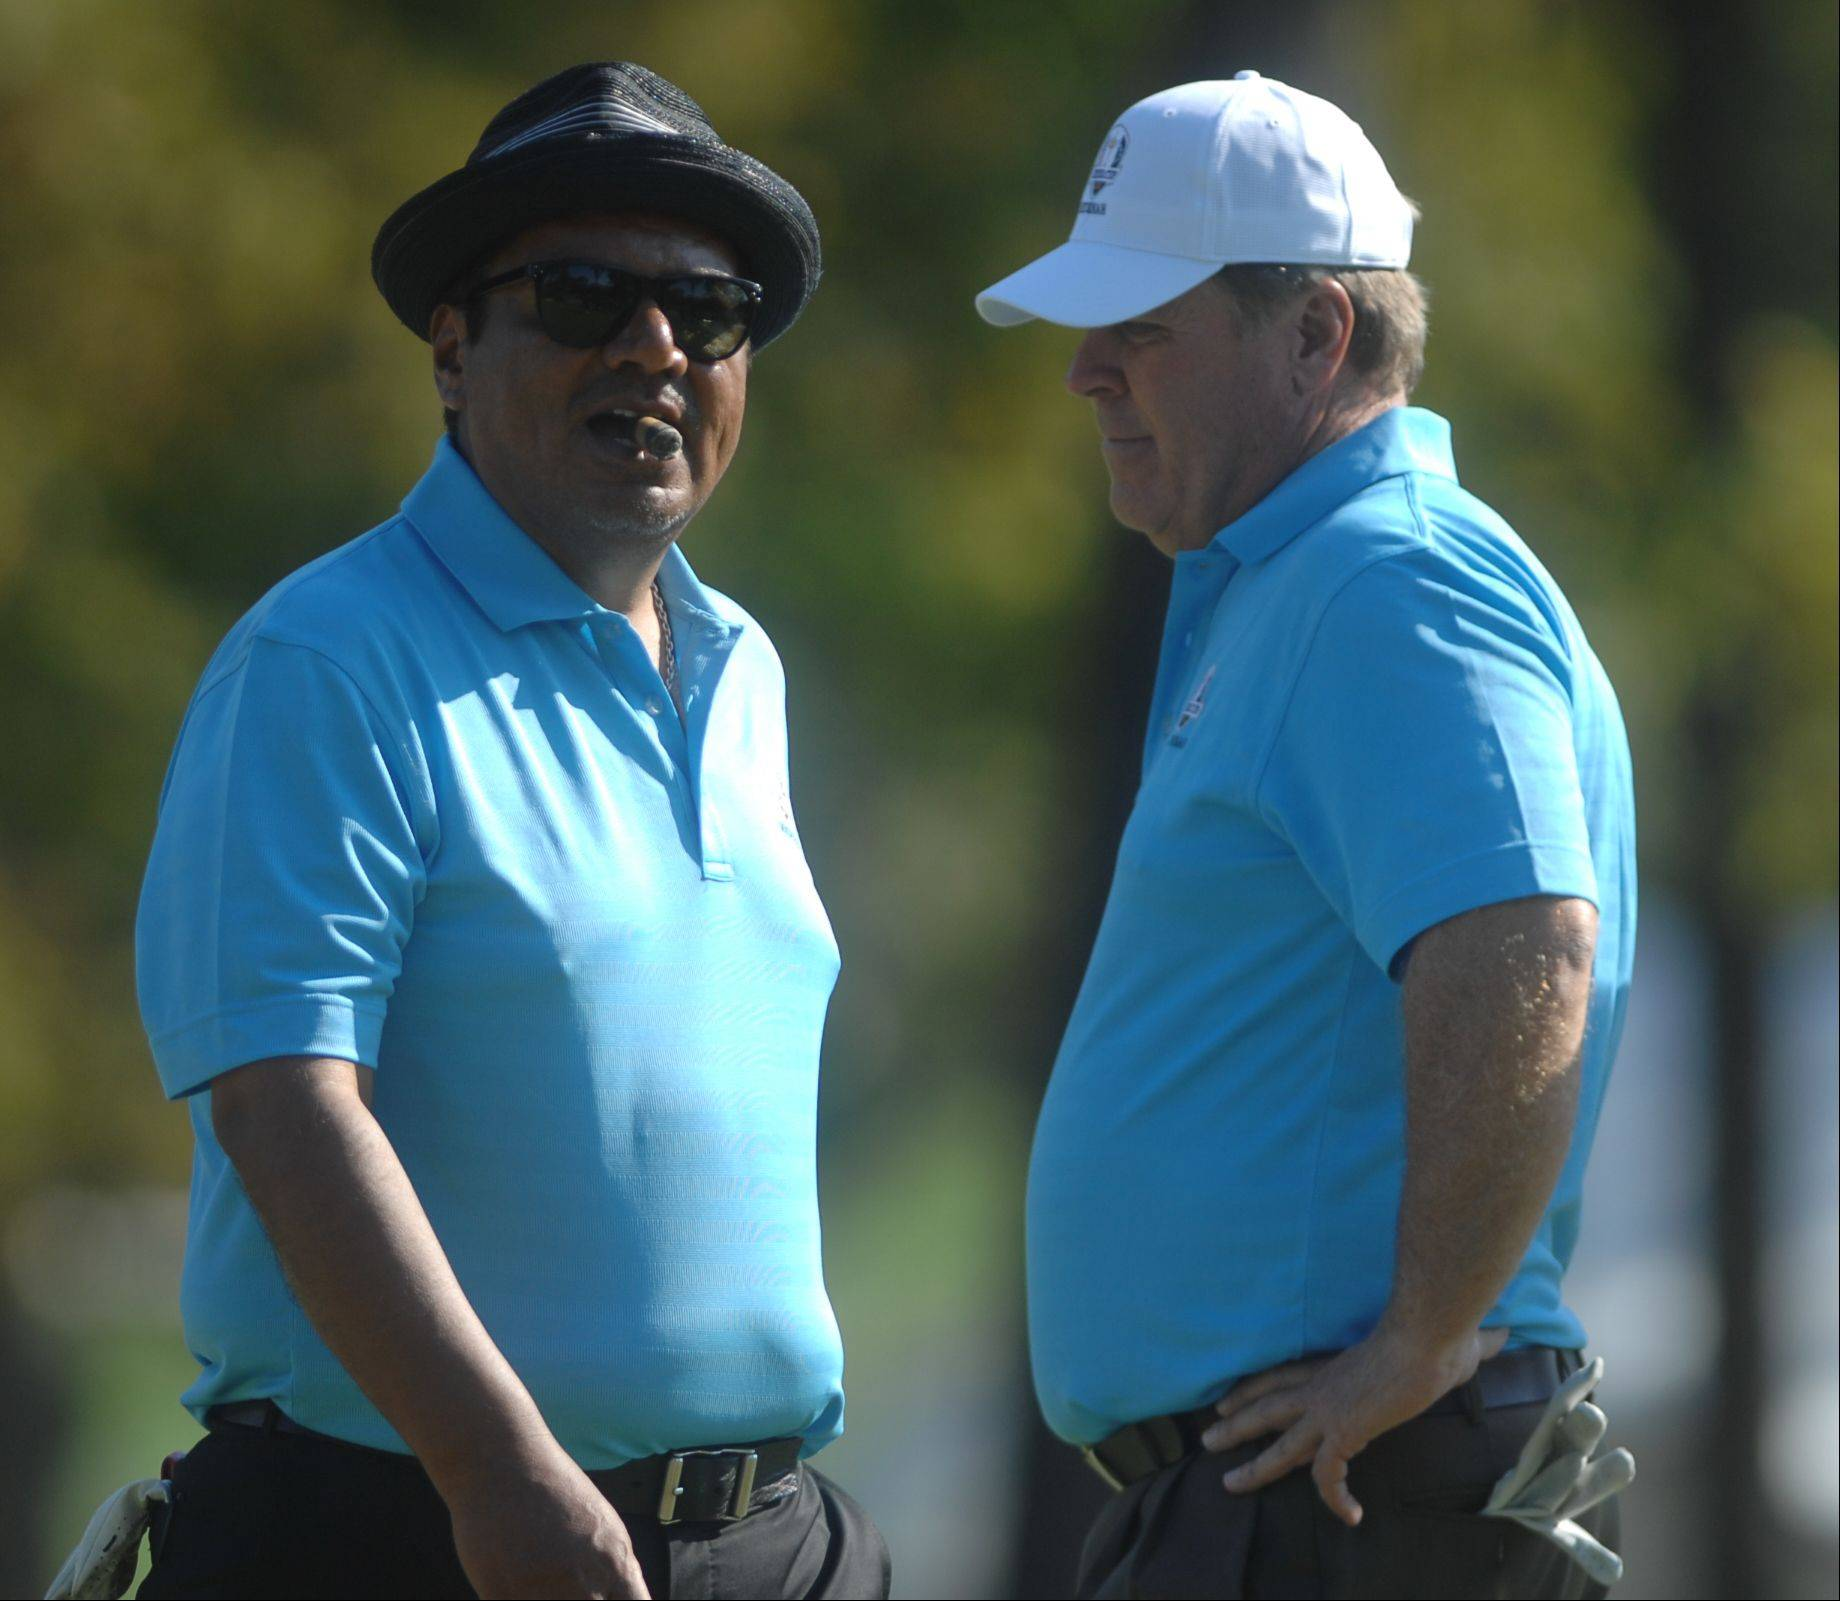 Actor George Lopez, left, and PGA golfer Hal Sutton at the 4th hole of the celebrity scramble Tuesday at Medinah Country Club.